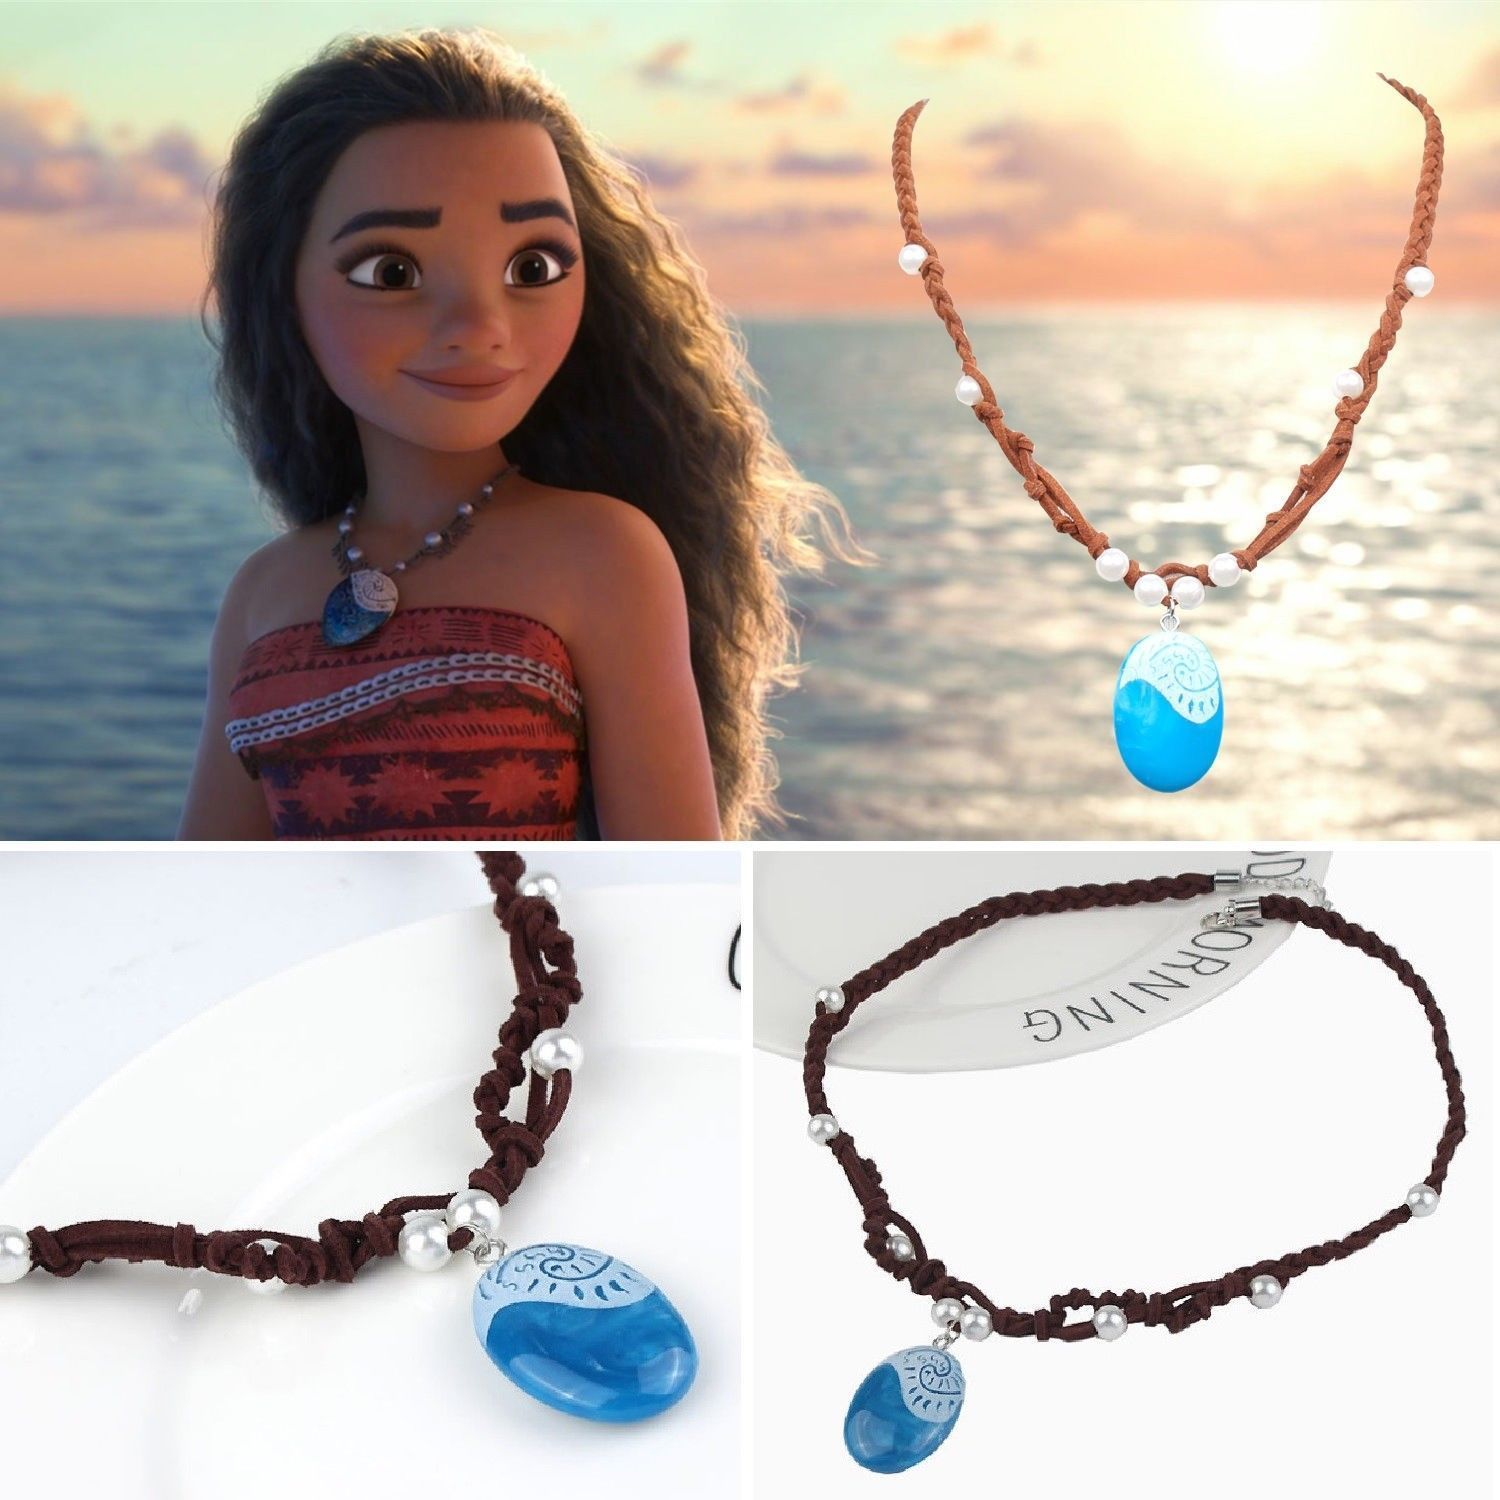 Moana Luminous Necklace Costume Cosplay Props Princess Heart of Te Fiti Girls Gift Cosplay Costume Prop Halloween Gifts Jewelry